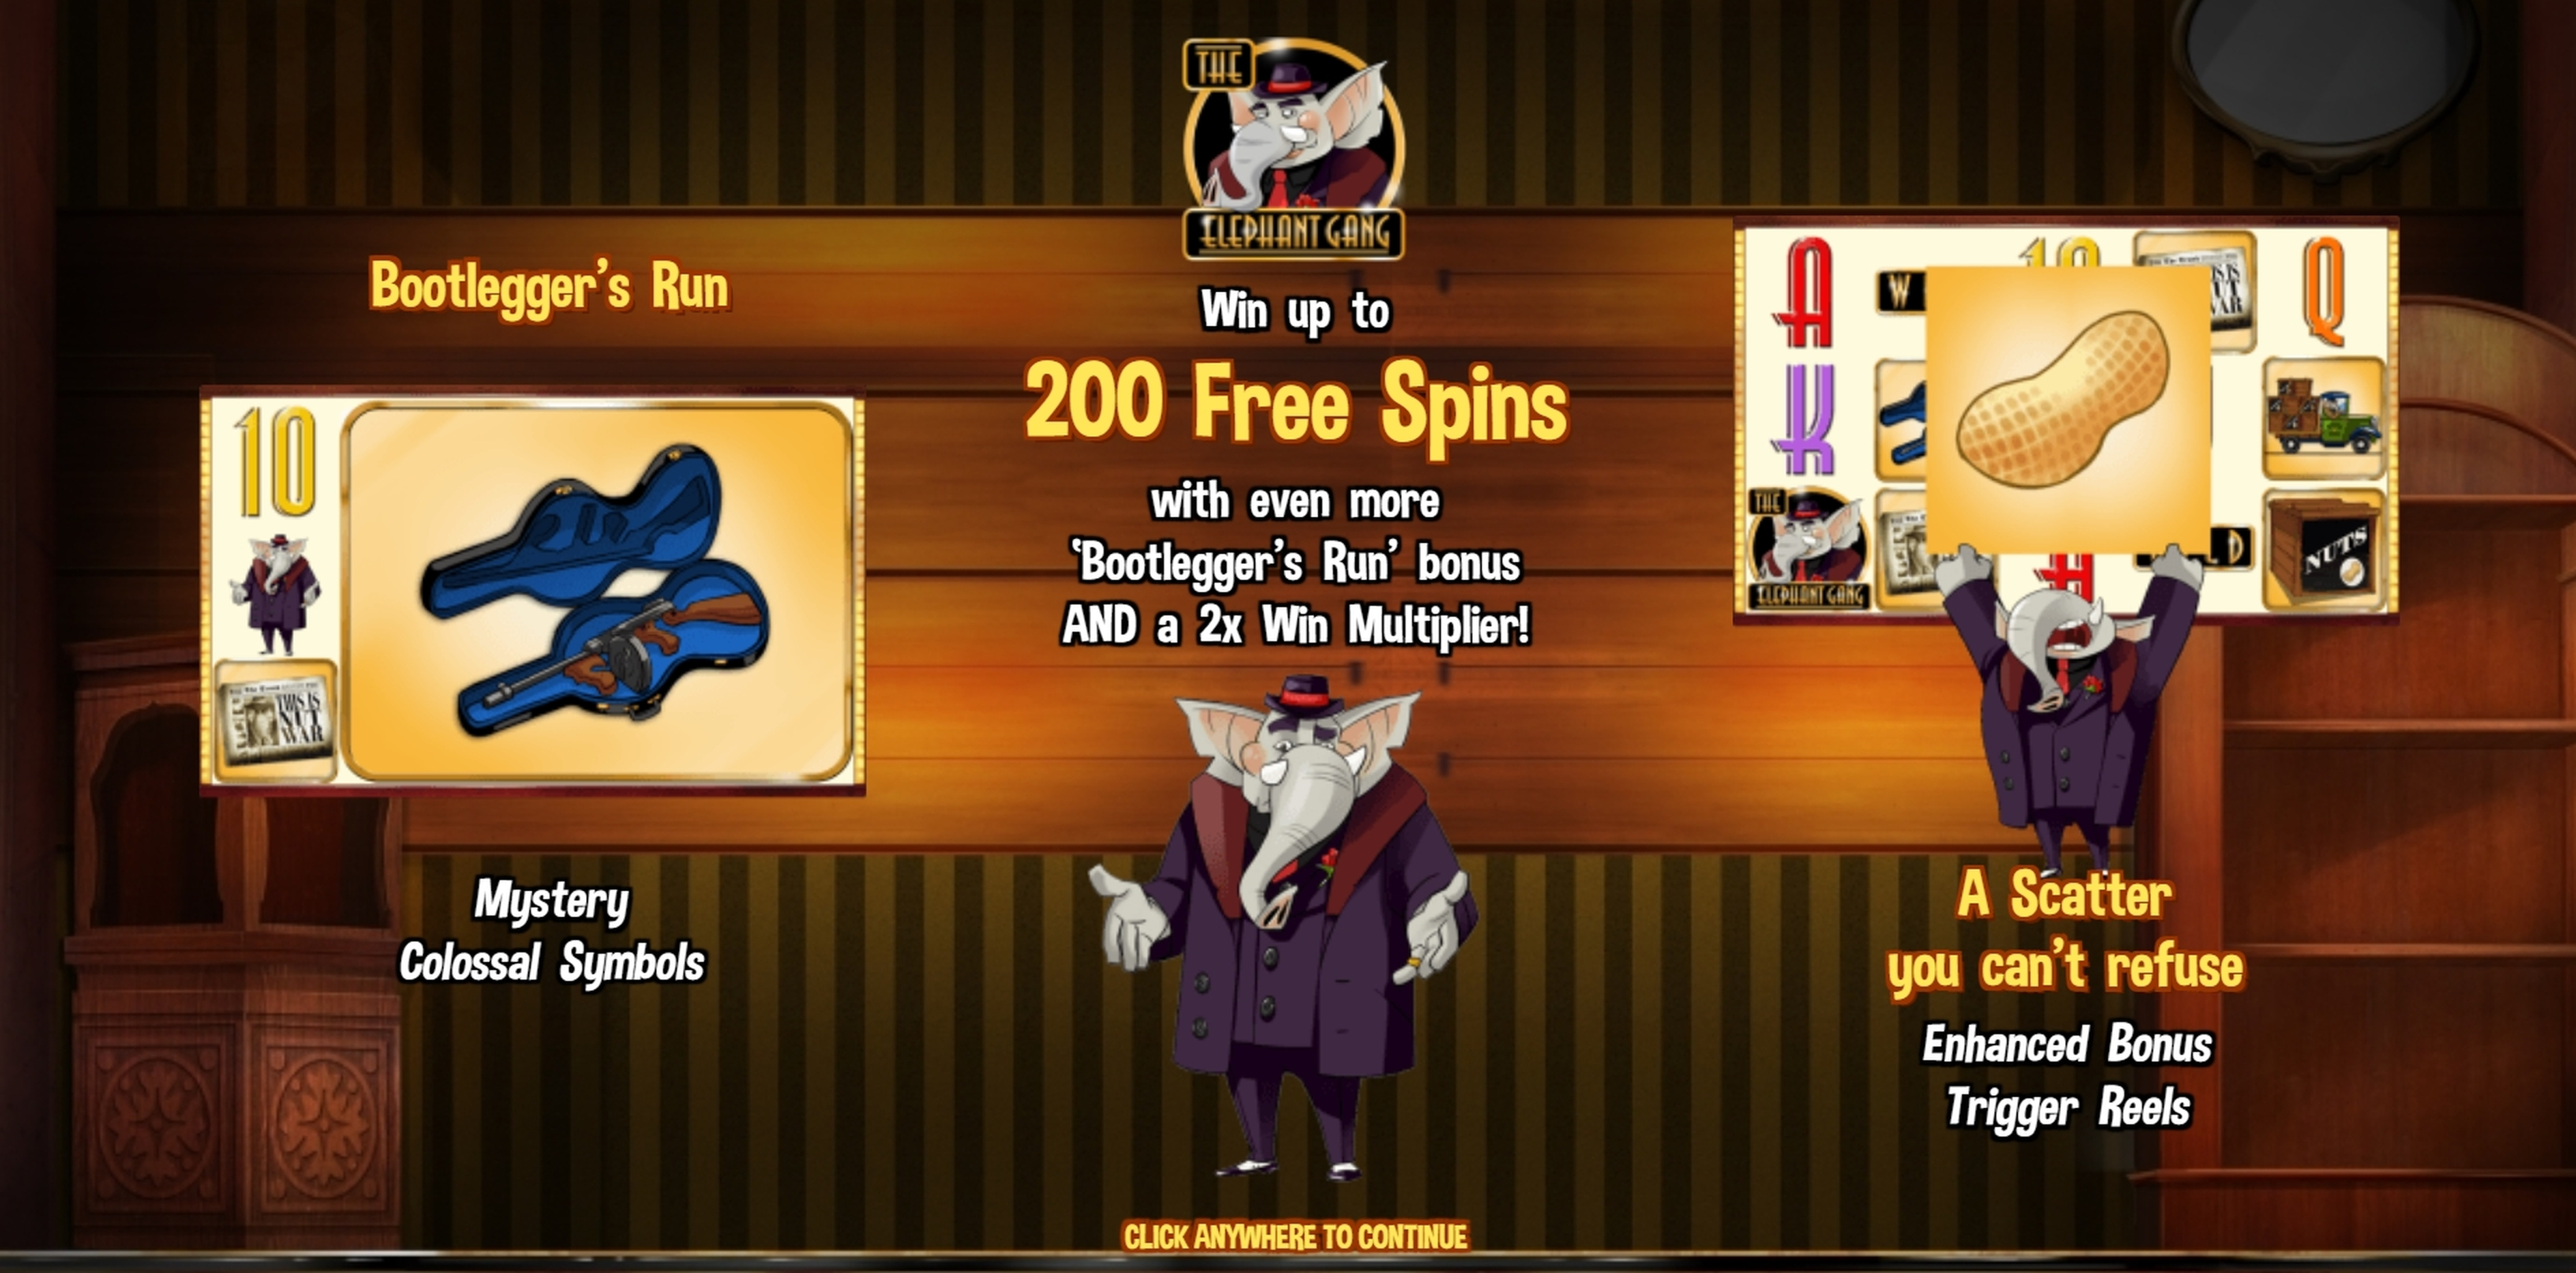 Play The Elephant Gang Free Casino Slot Game by Skyrocket Entertainment